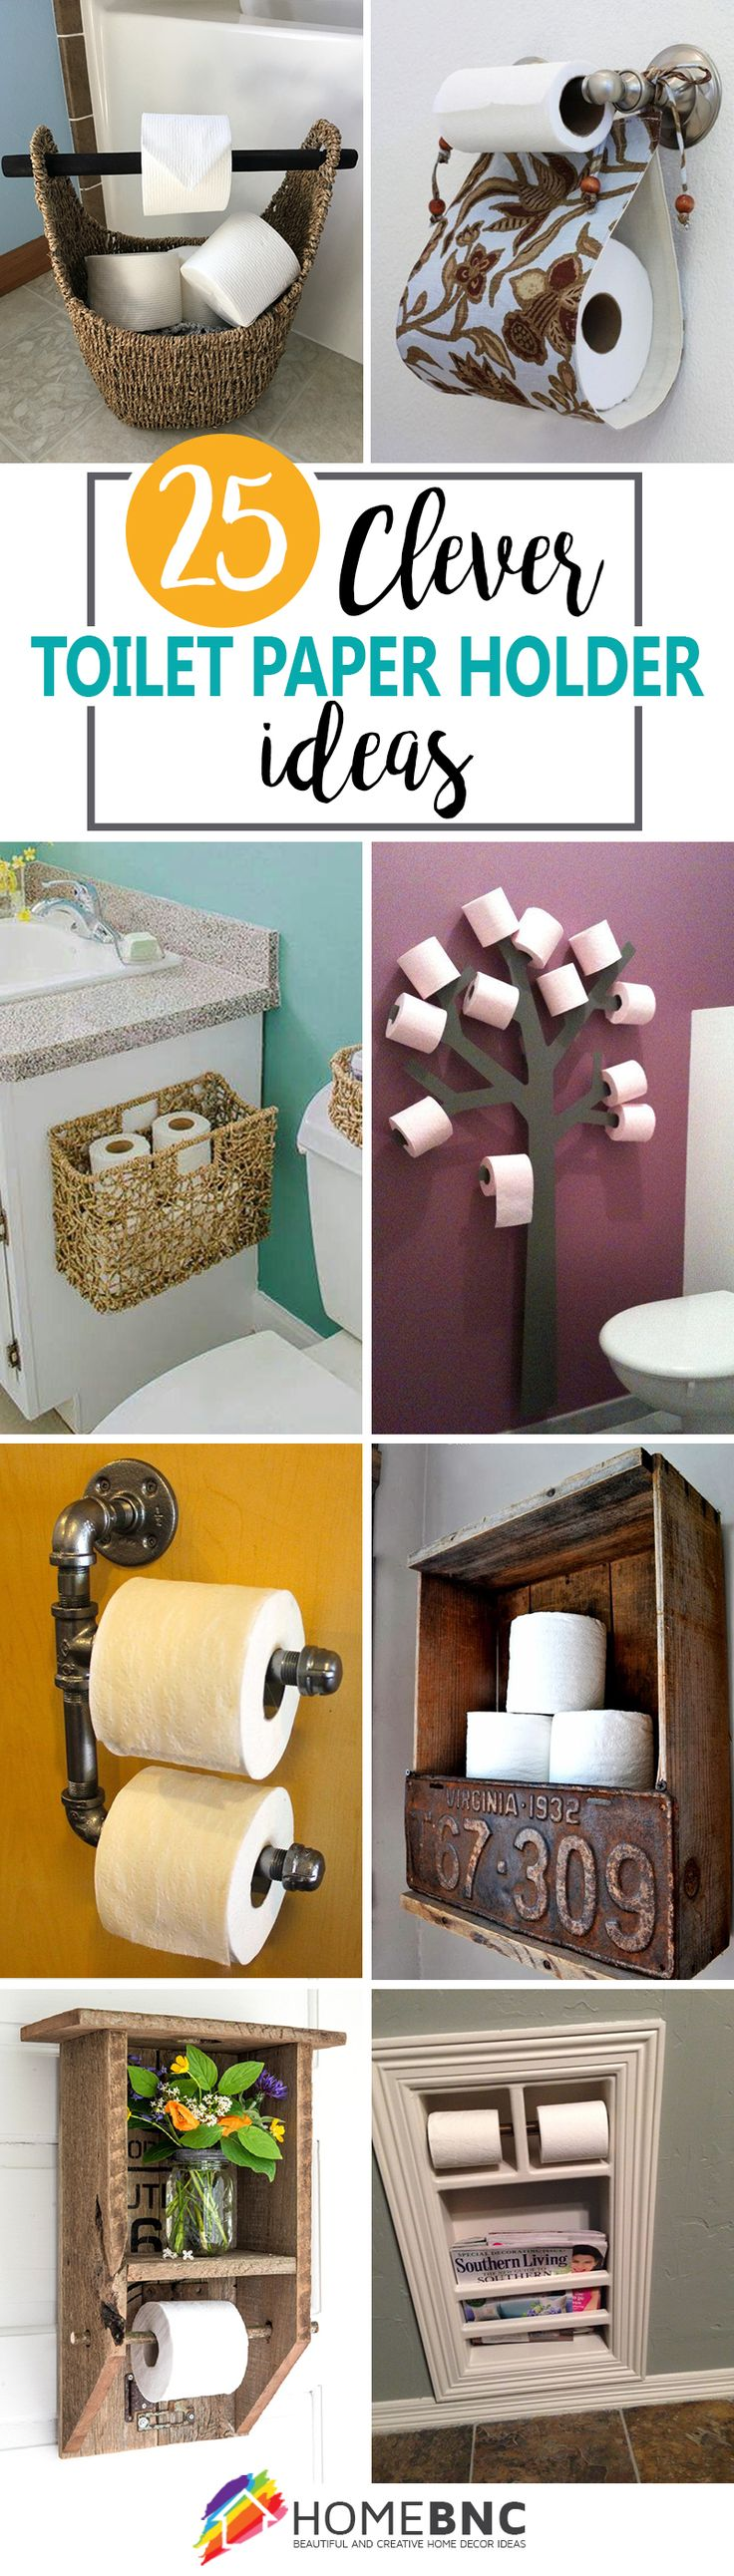 extraordinary inspiration gold toilet paper. Awesome Products  Cloud concrete toilet roll holder Toilet Product design and shapes